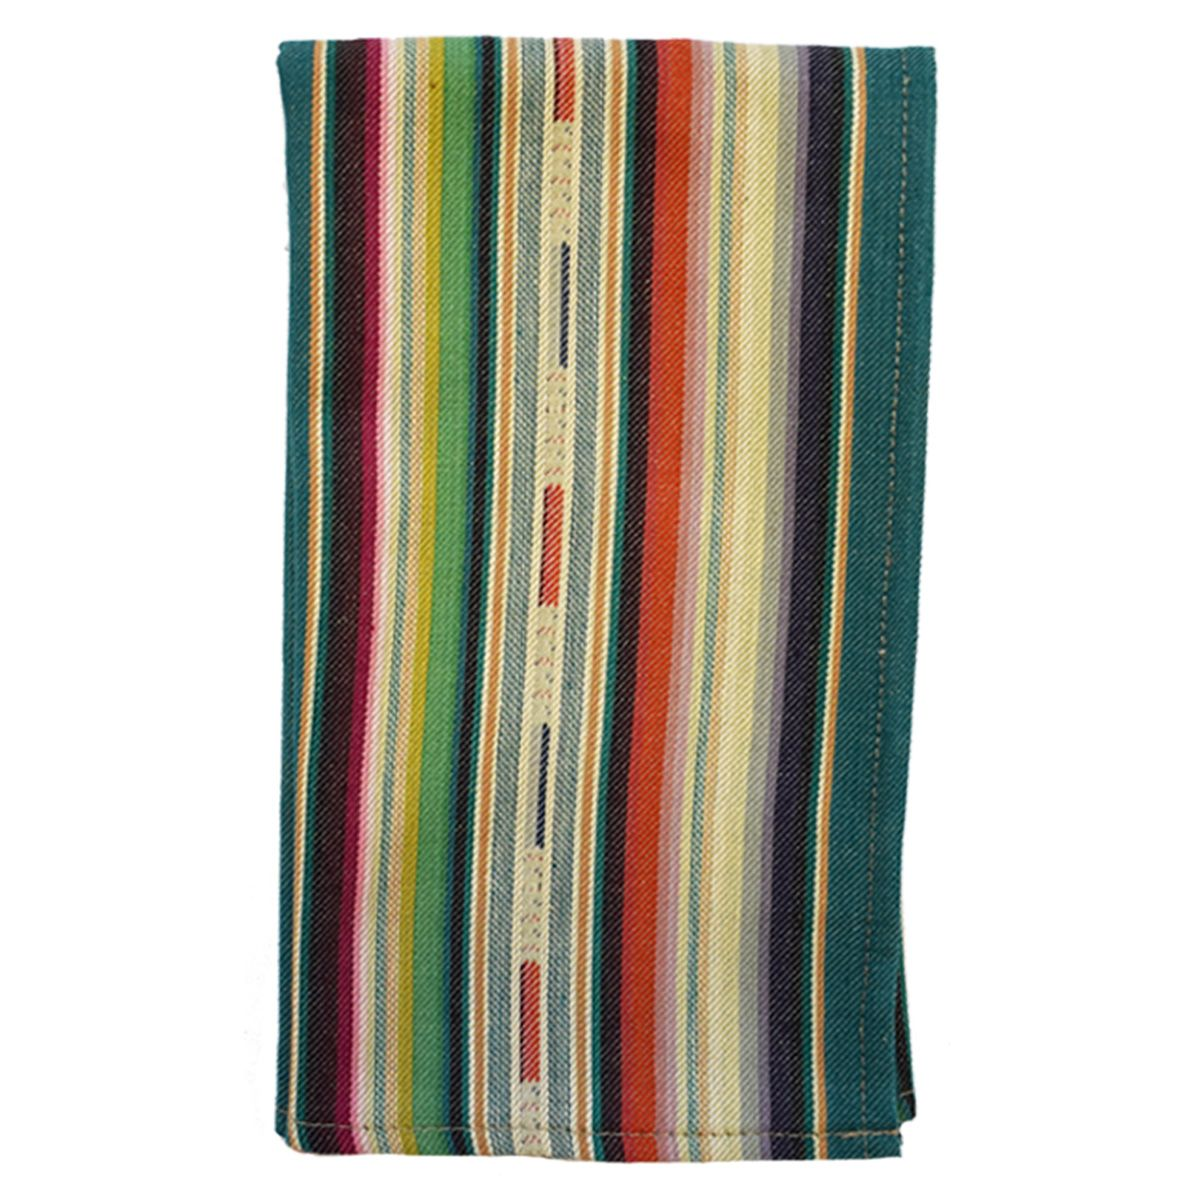 Zuni Turquoise Napkins - Set of 4